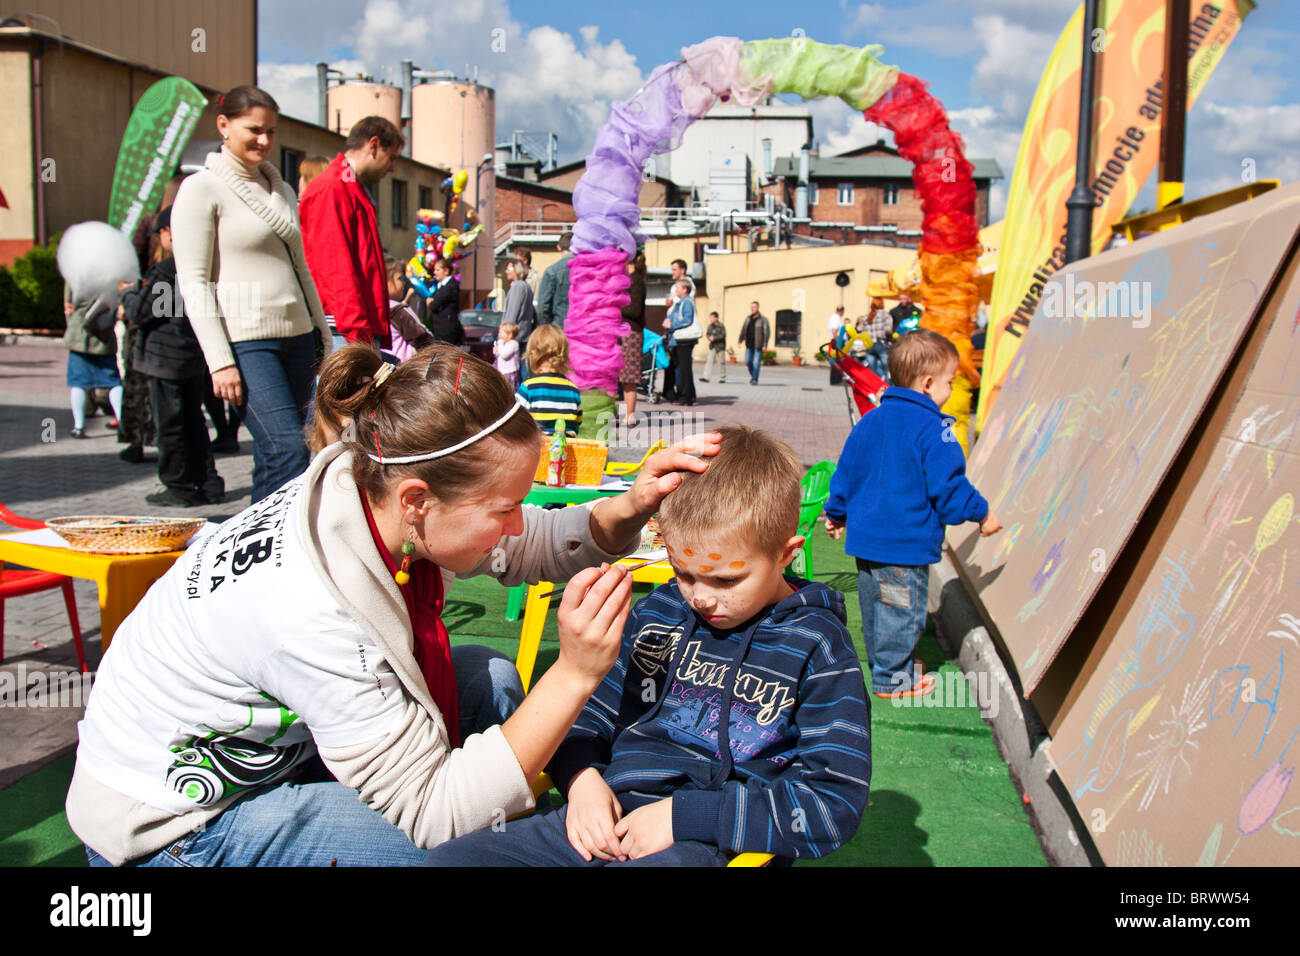 A woman painting boy face - Stock Image